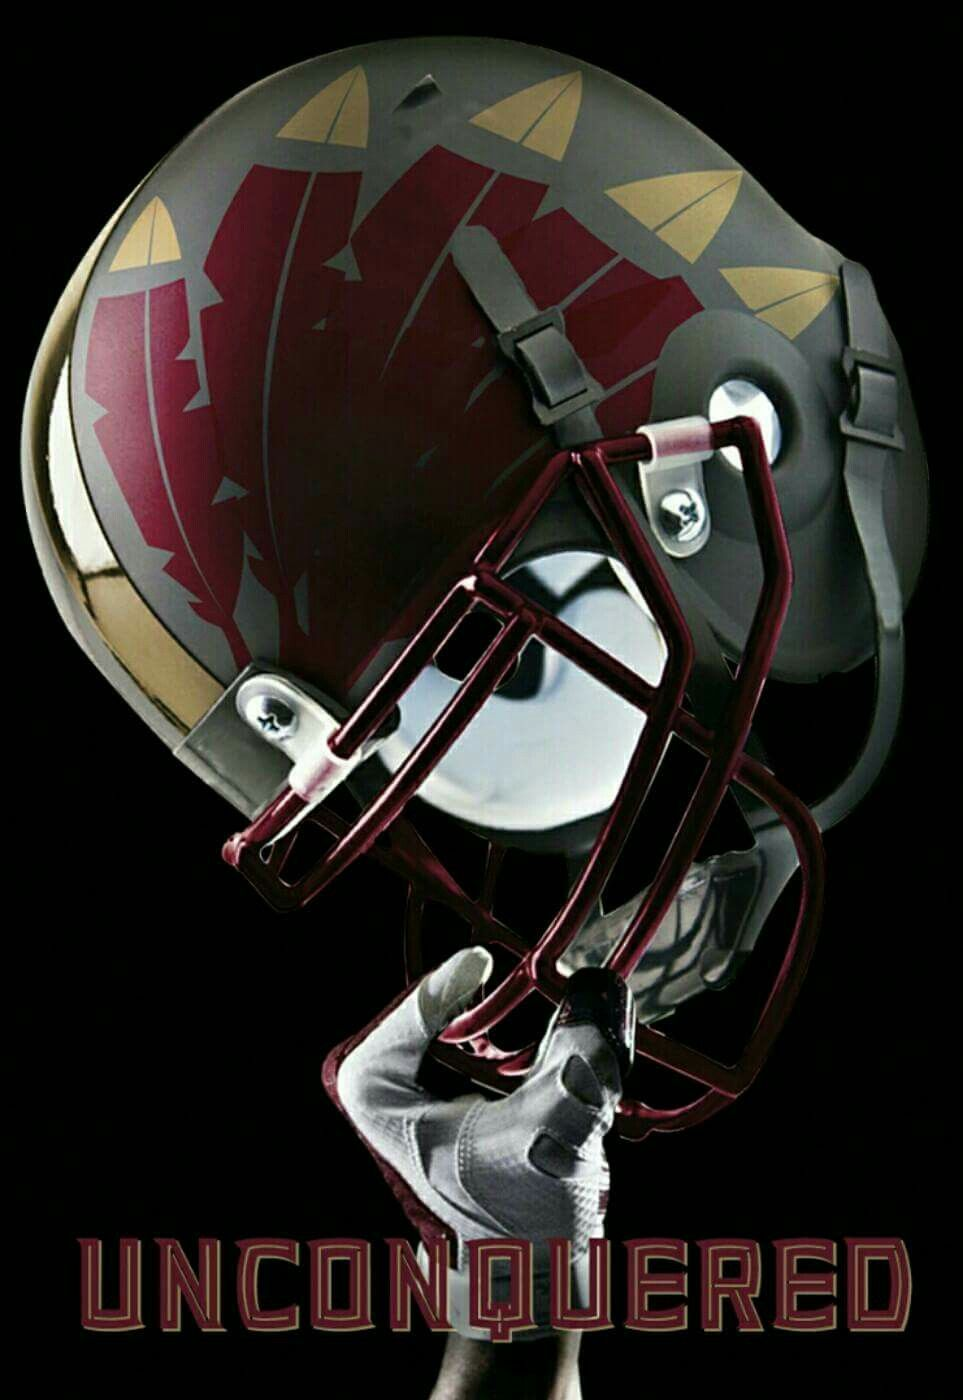 Pin By Kevin Byrd On Seminoles With Images Fsu Football Florida State Seminoles Football Florida State Seminoles Football Logo